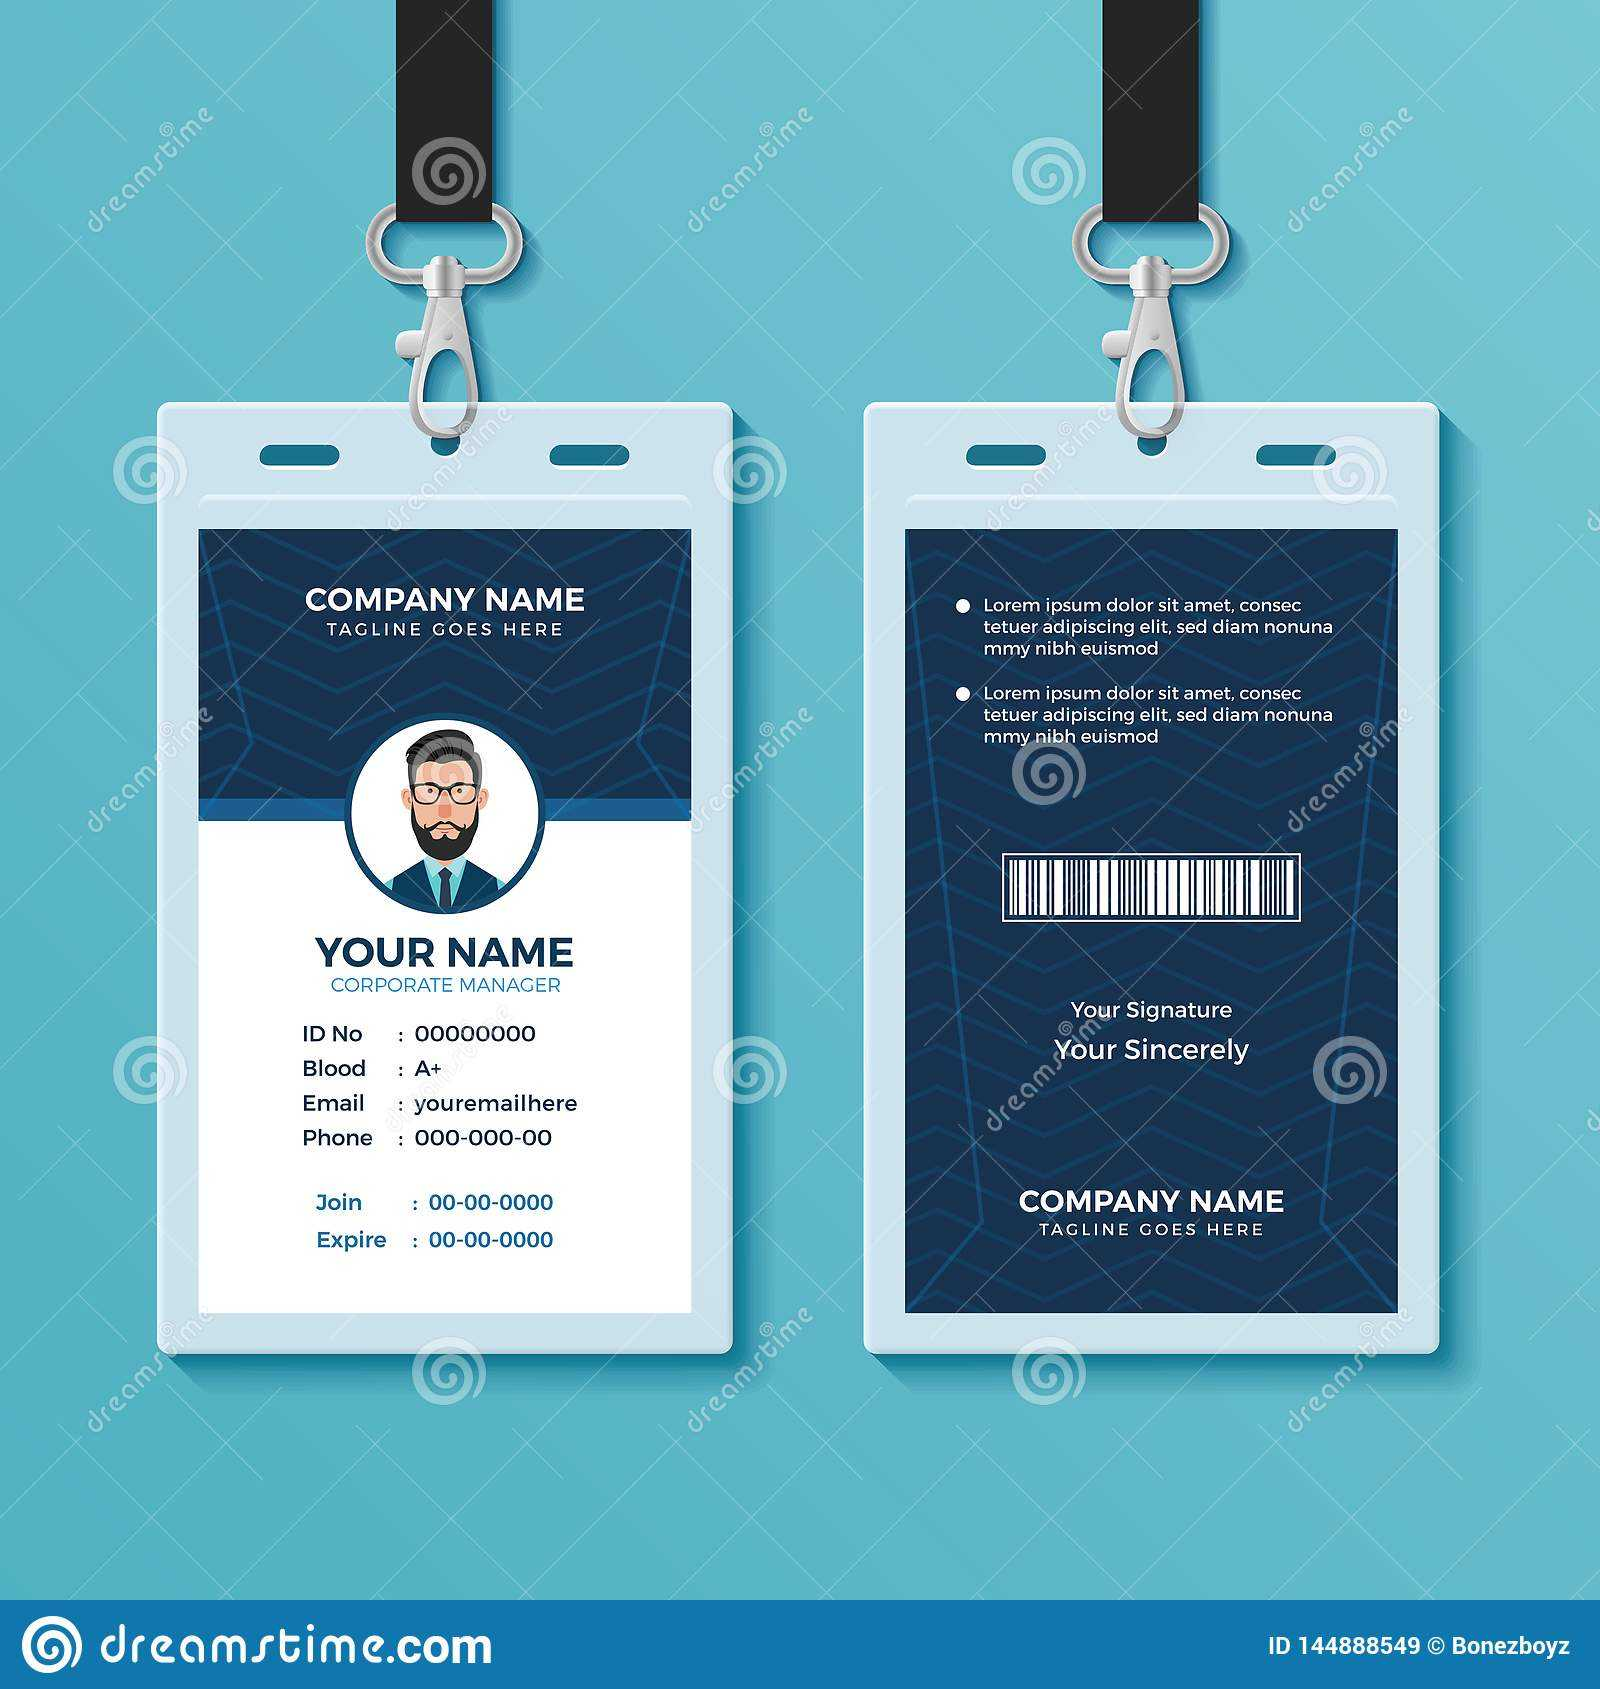 Modern And Clean Id Card Design Template Stock Vector In Conference Id Card Template